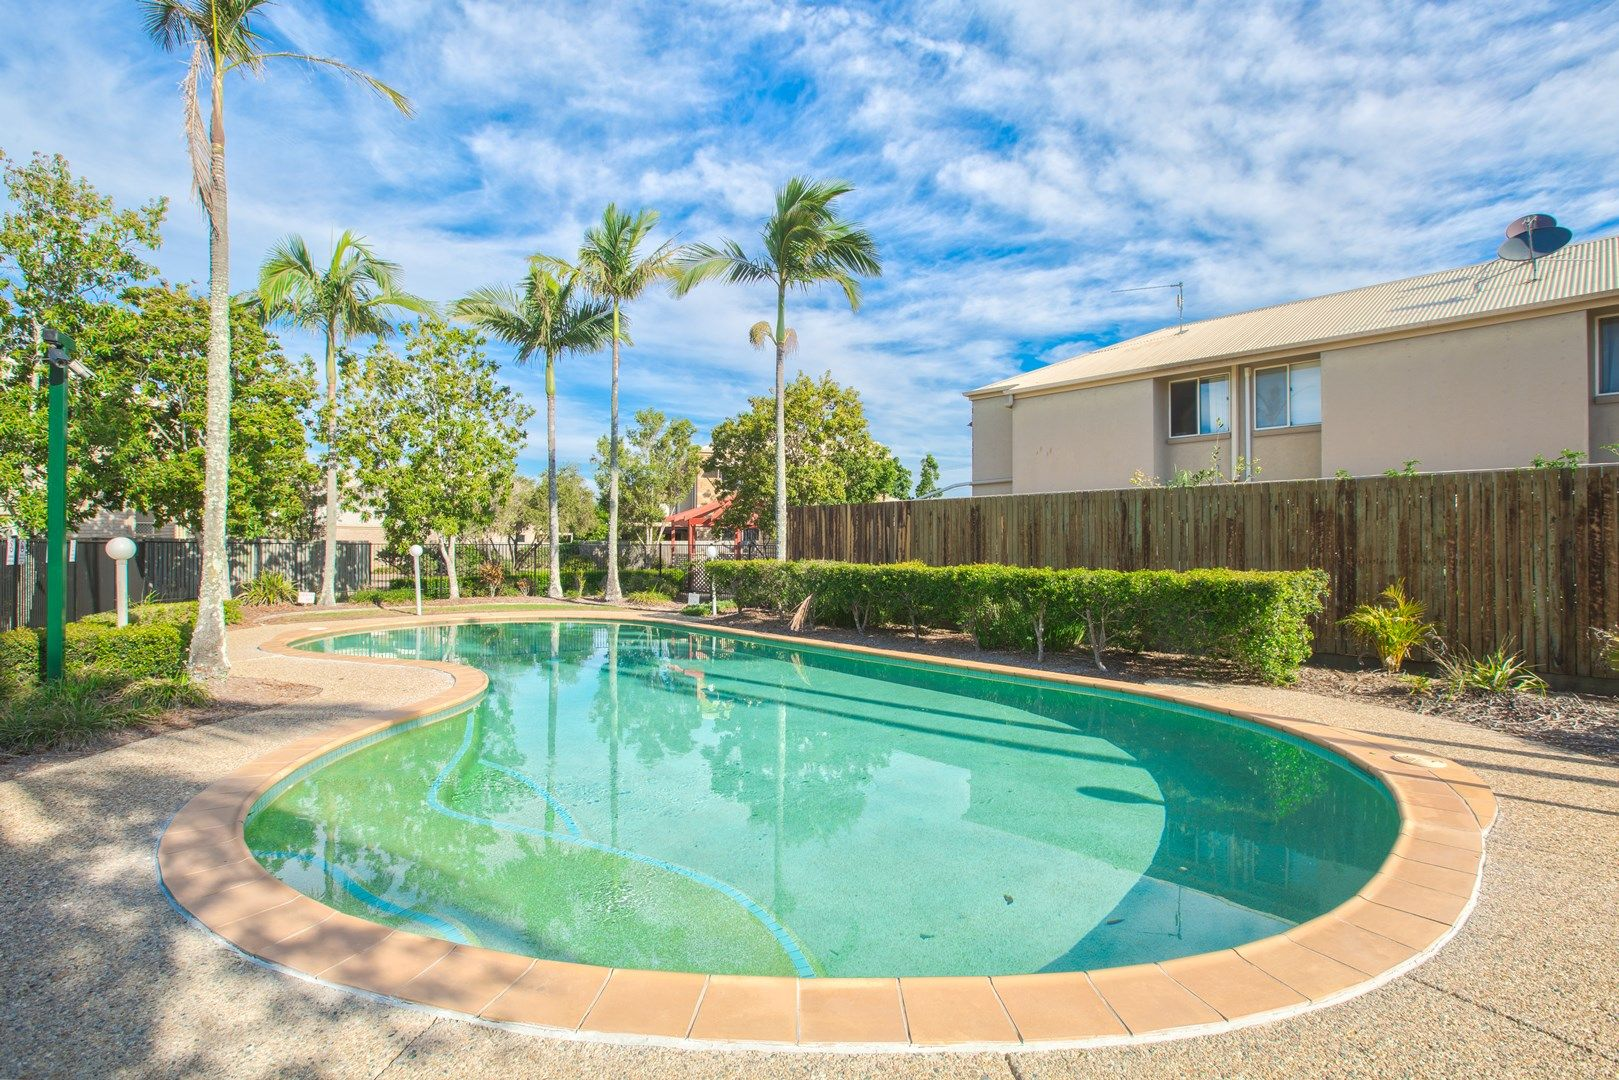 12/36 albert street, Waterford QLD 4133, Image 0